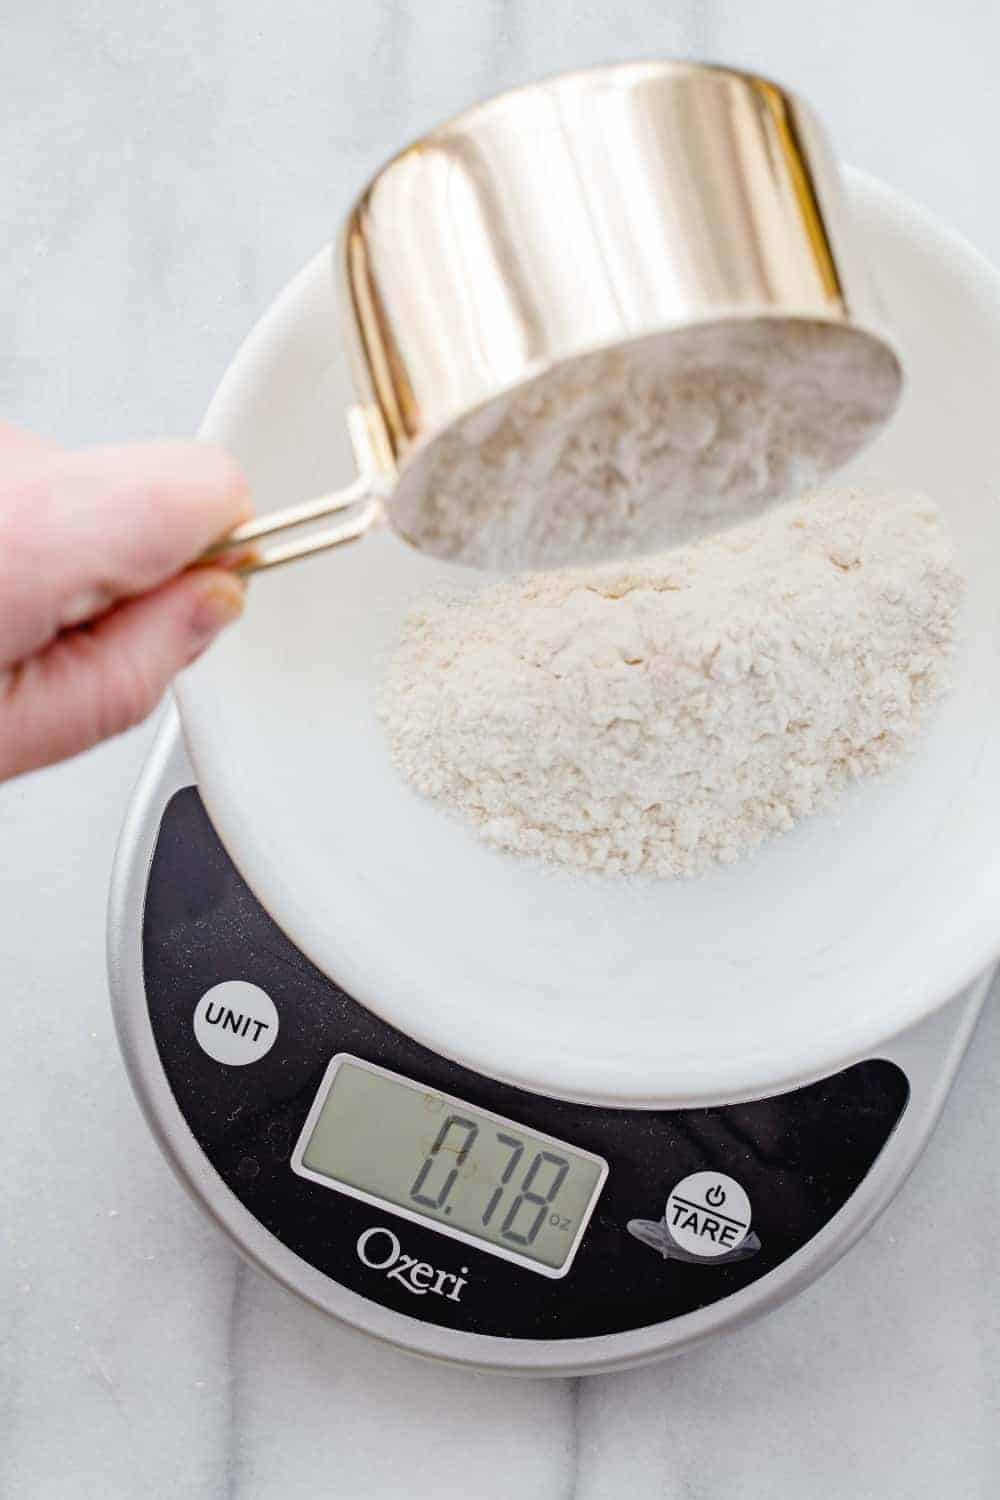 Hand pouring flour from a gold measuring cup into a white bowl on a digital scale